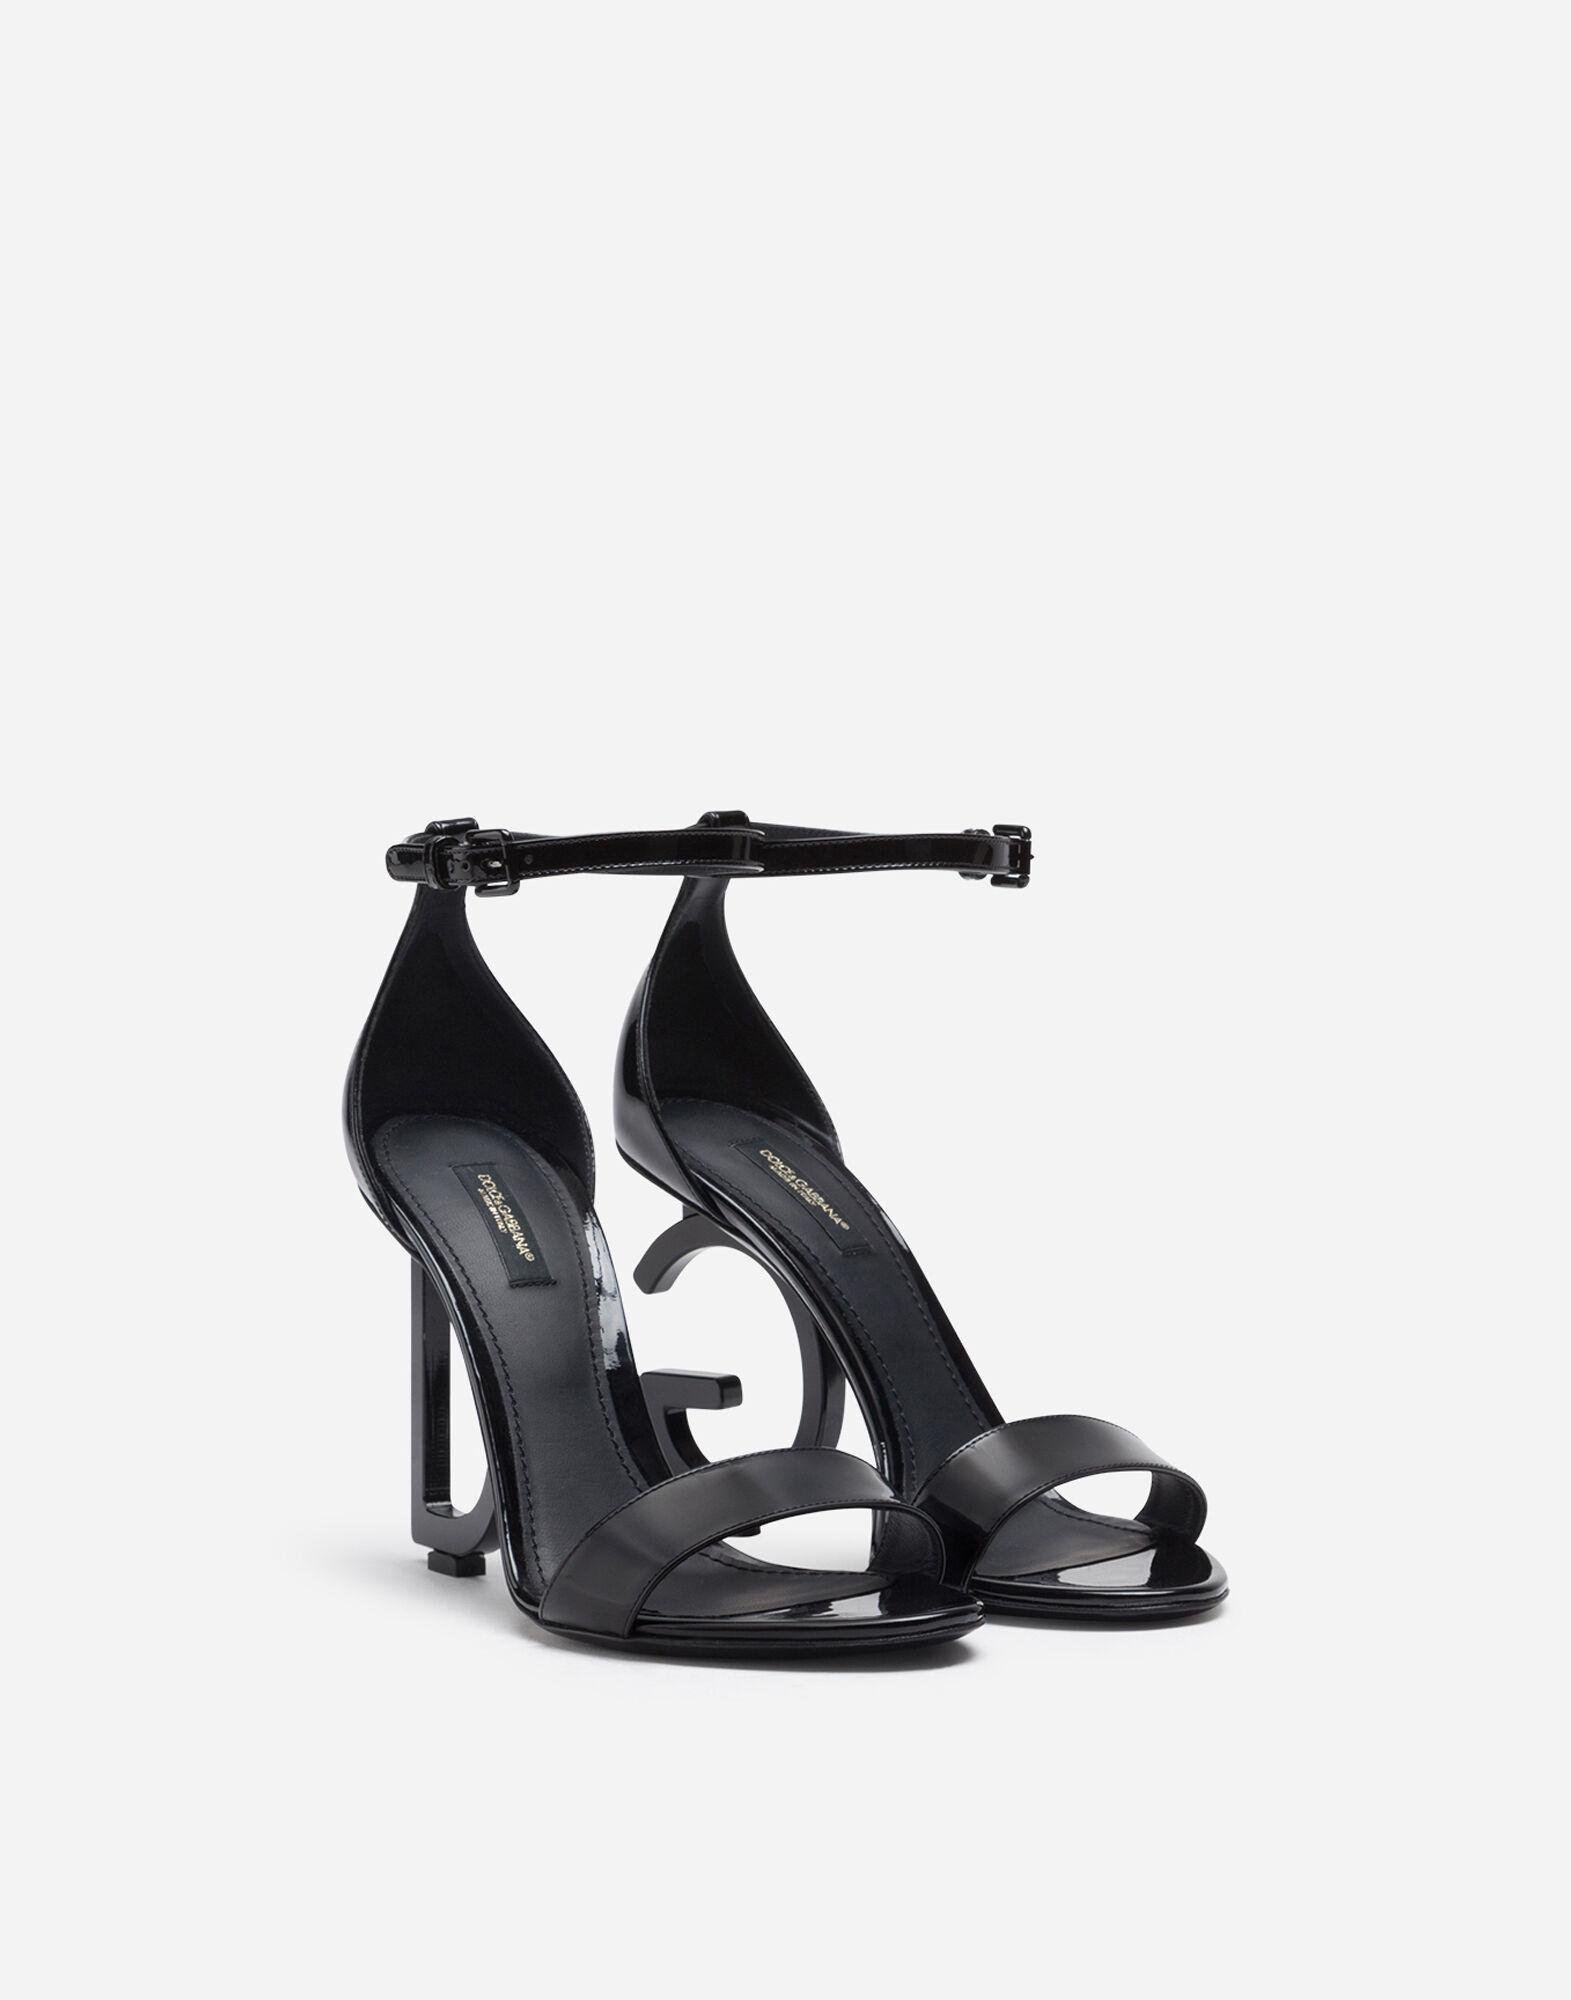 Patent leather sandals with DG heel 1